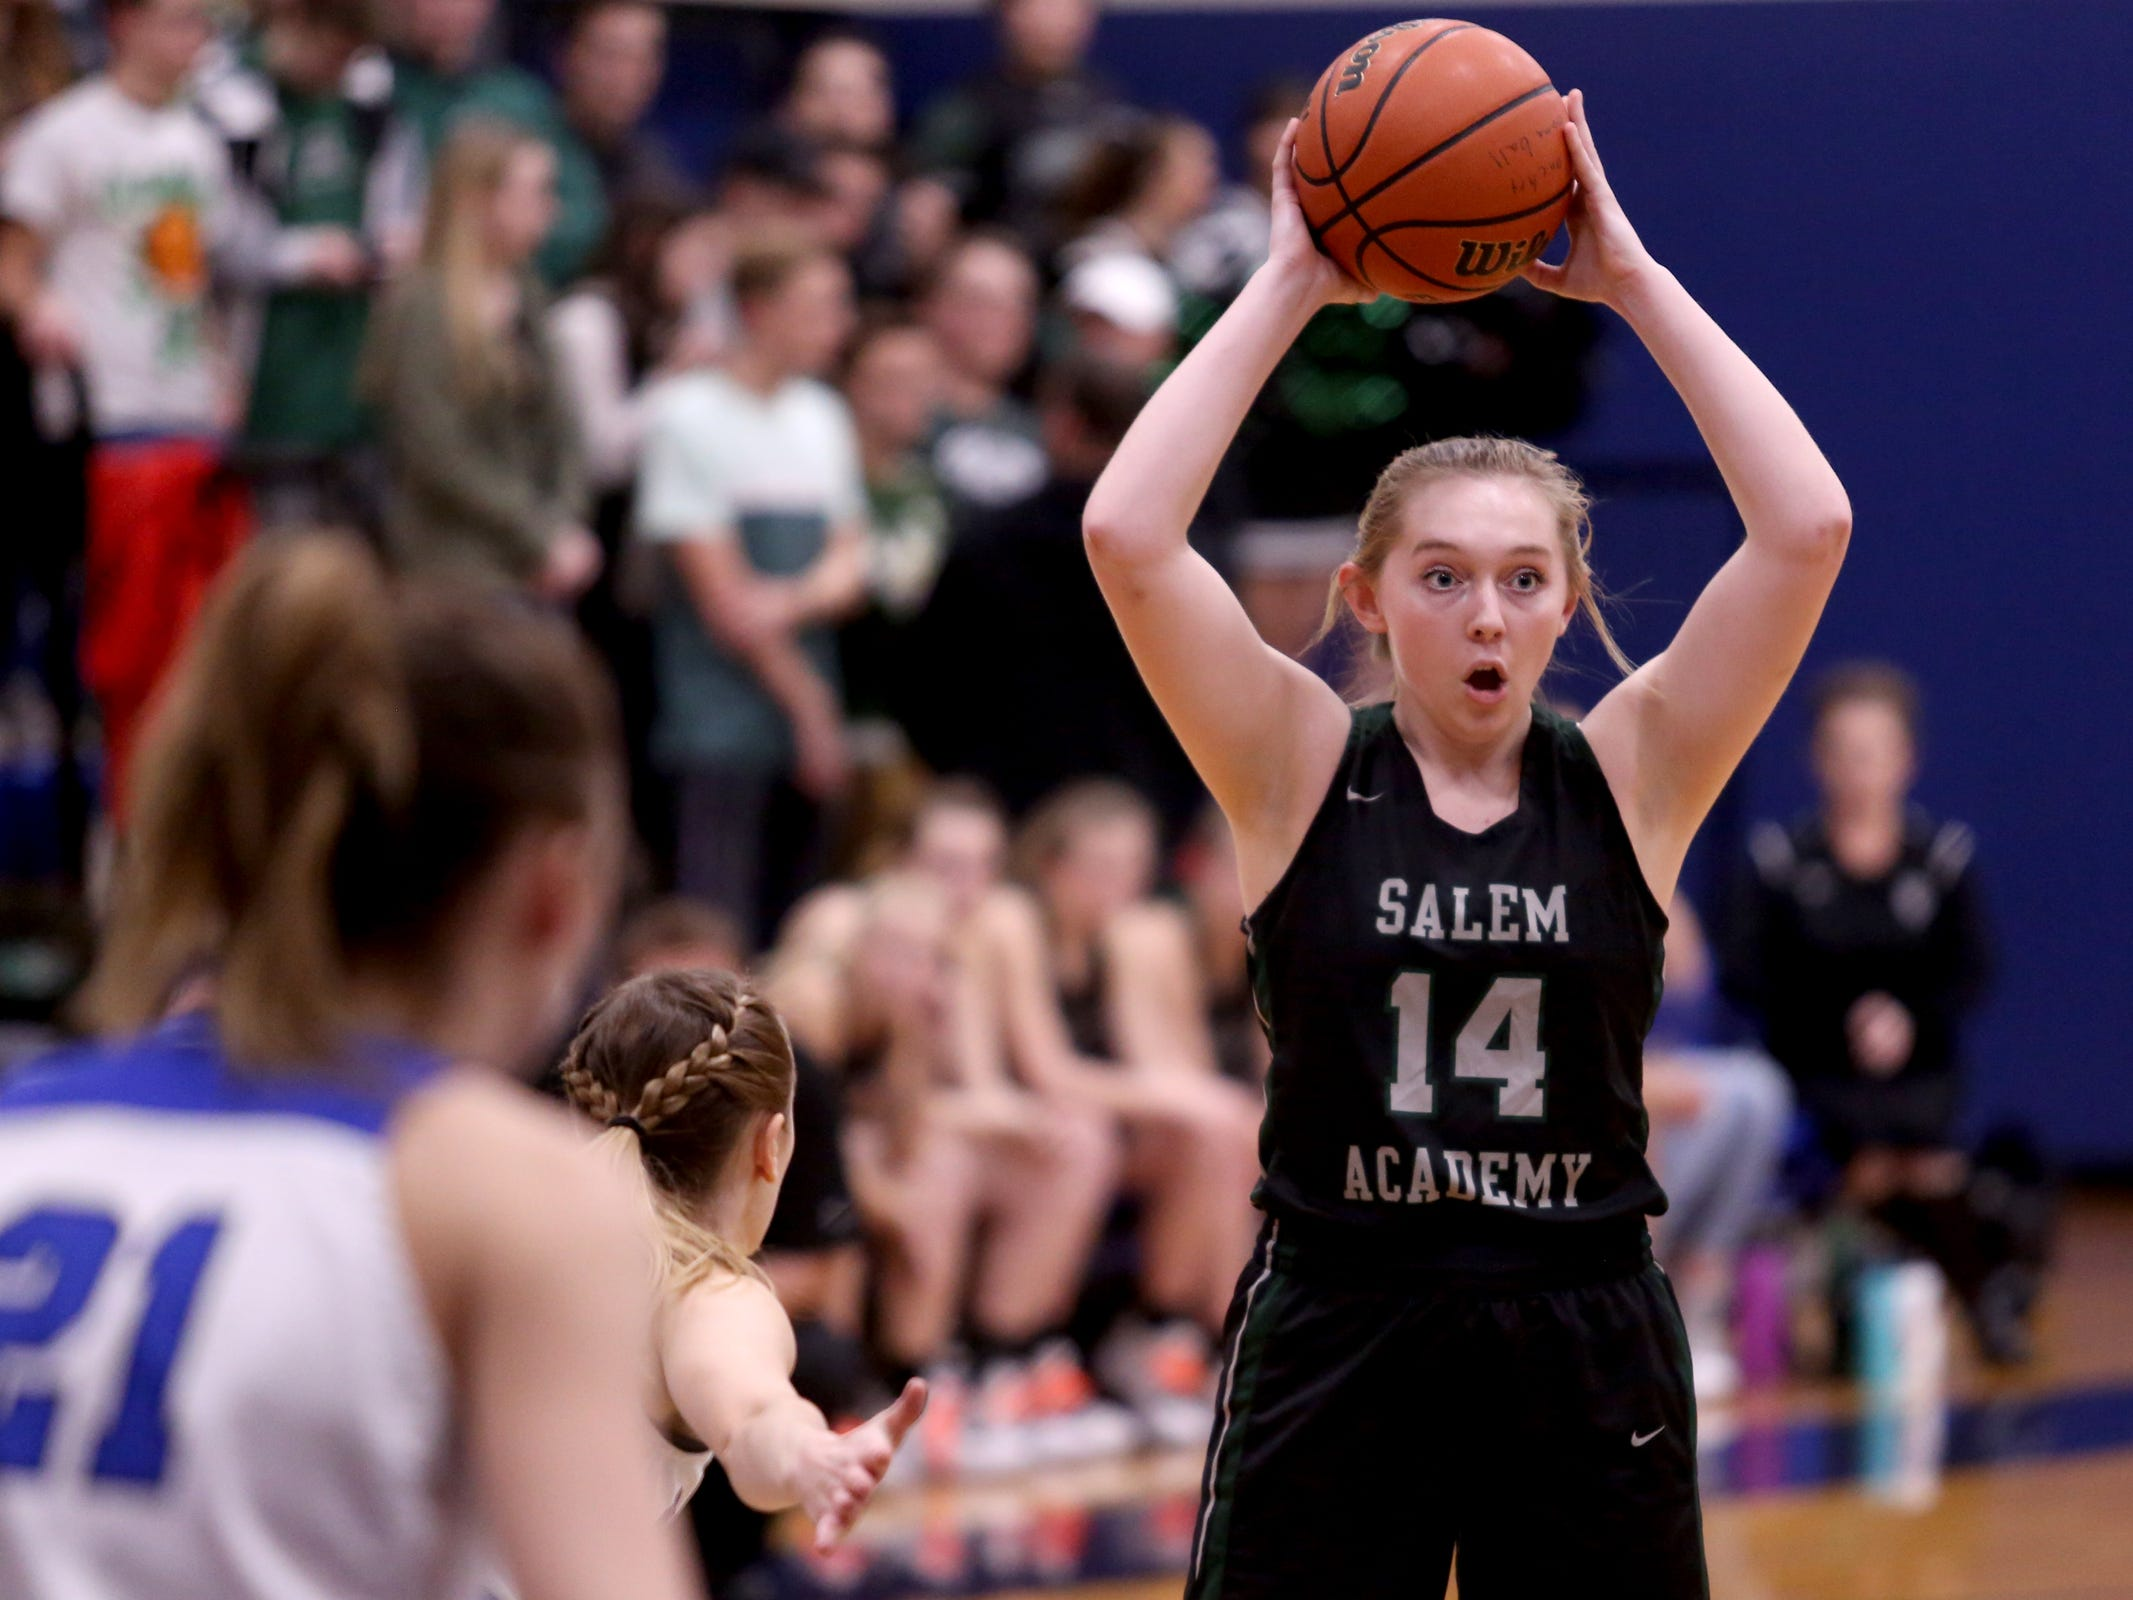 Salem Academy's Grace Brown (14) looks to pass the ball in the first half of the Salem Academy vs. Blanchet Catholic girls basketball game at Blanchet Catholic School in Salem on Friday, Jan. 18, 2019. Blanchet Catholic won the gam 48-40.